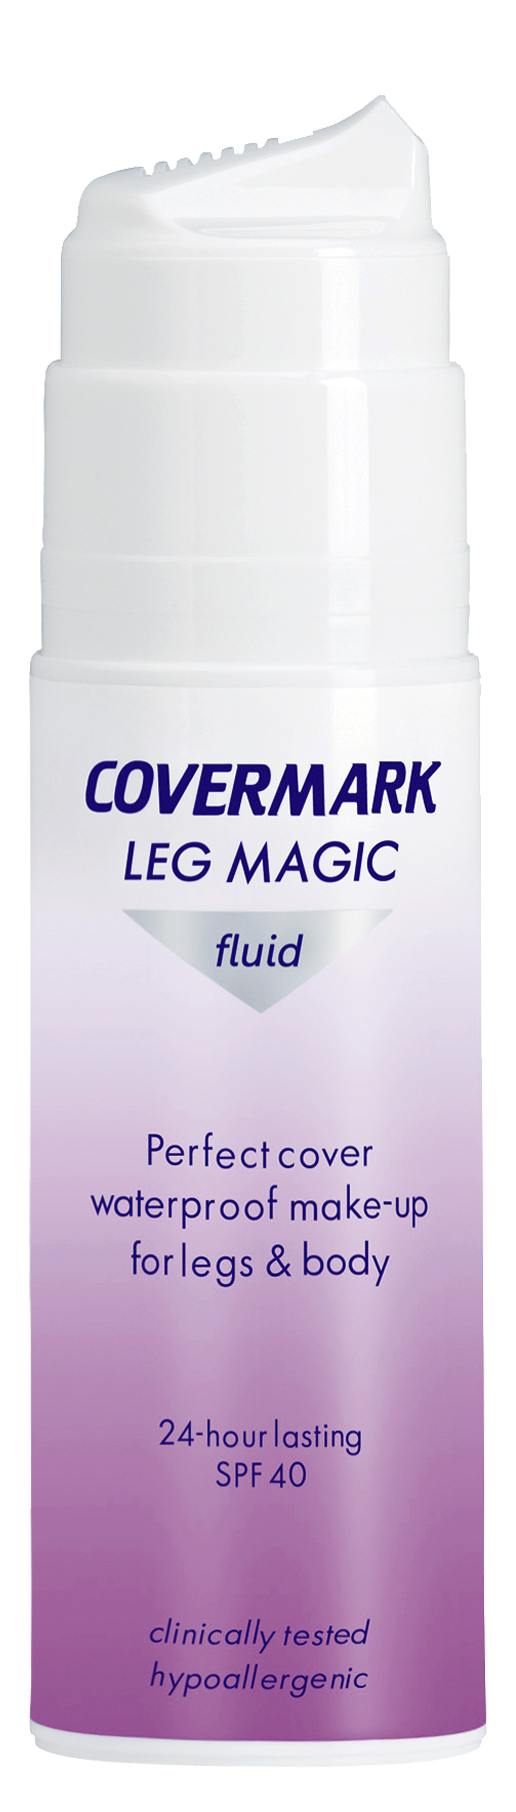 leg-magic-fluid